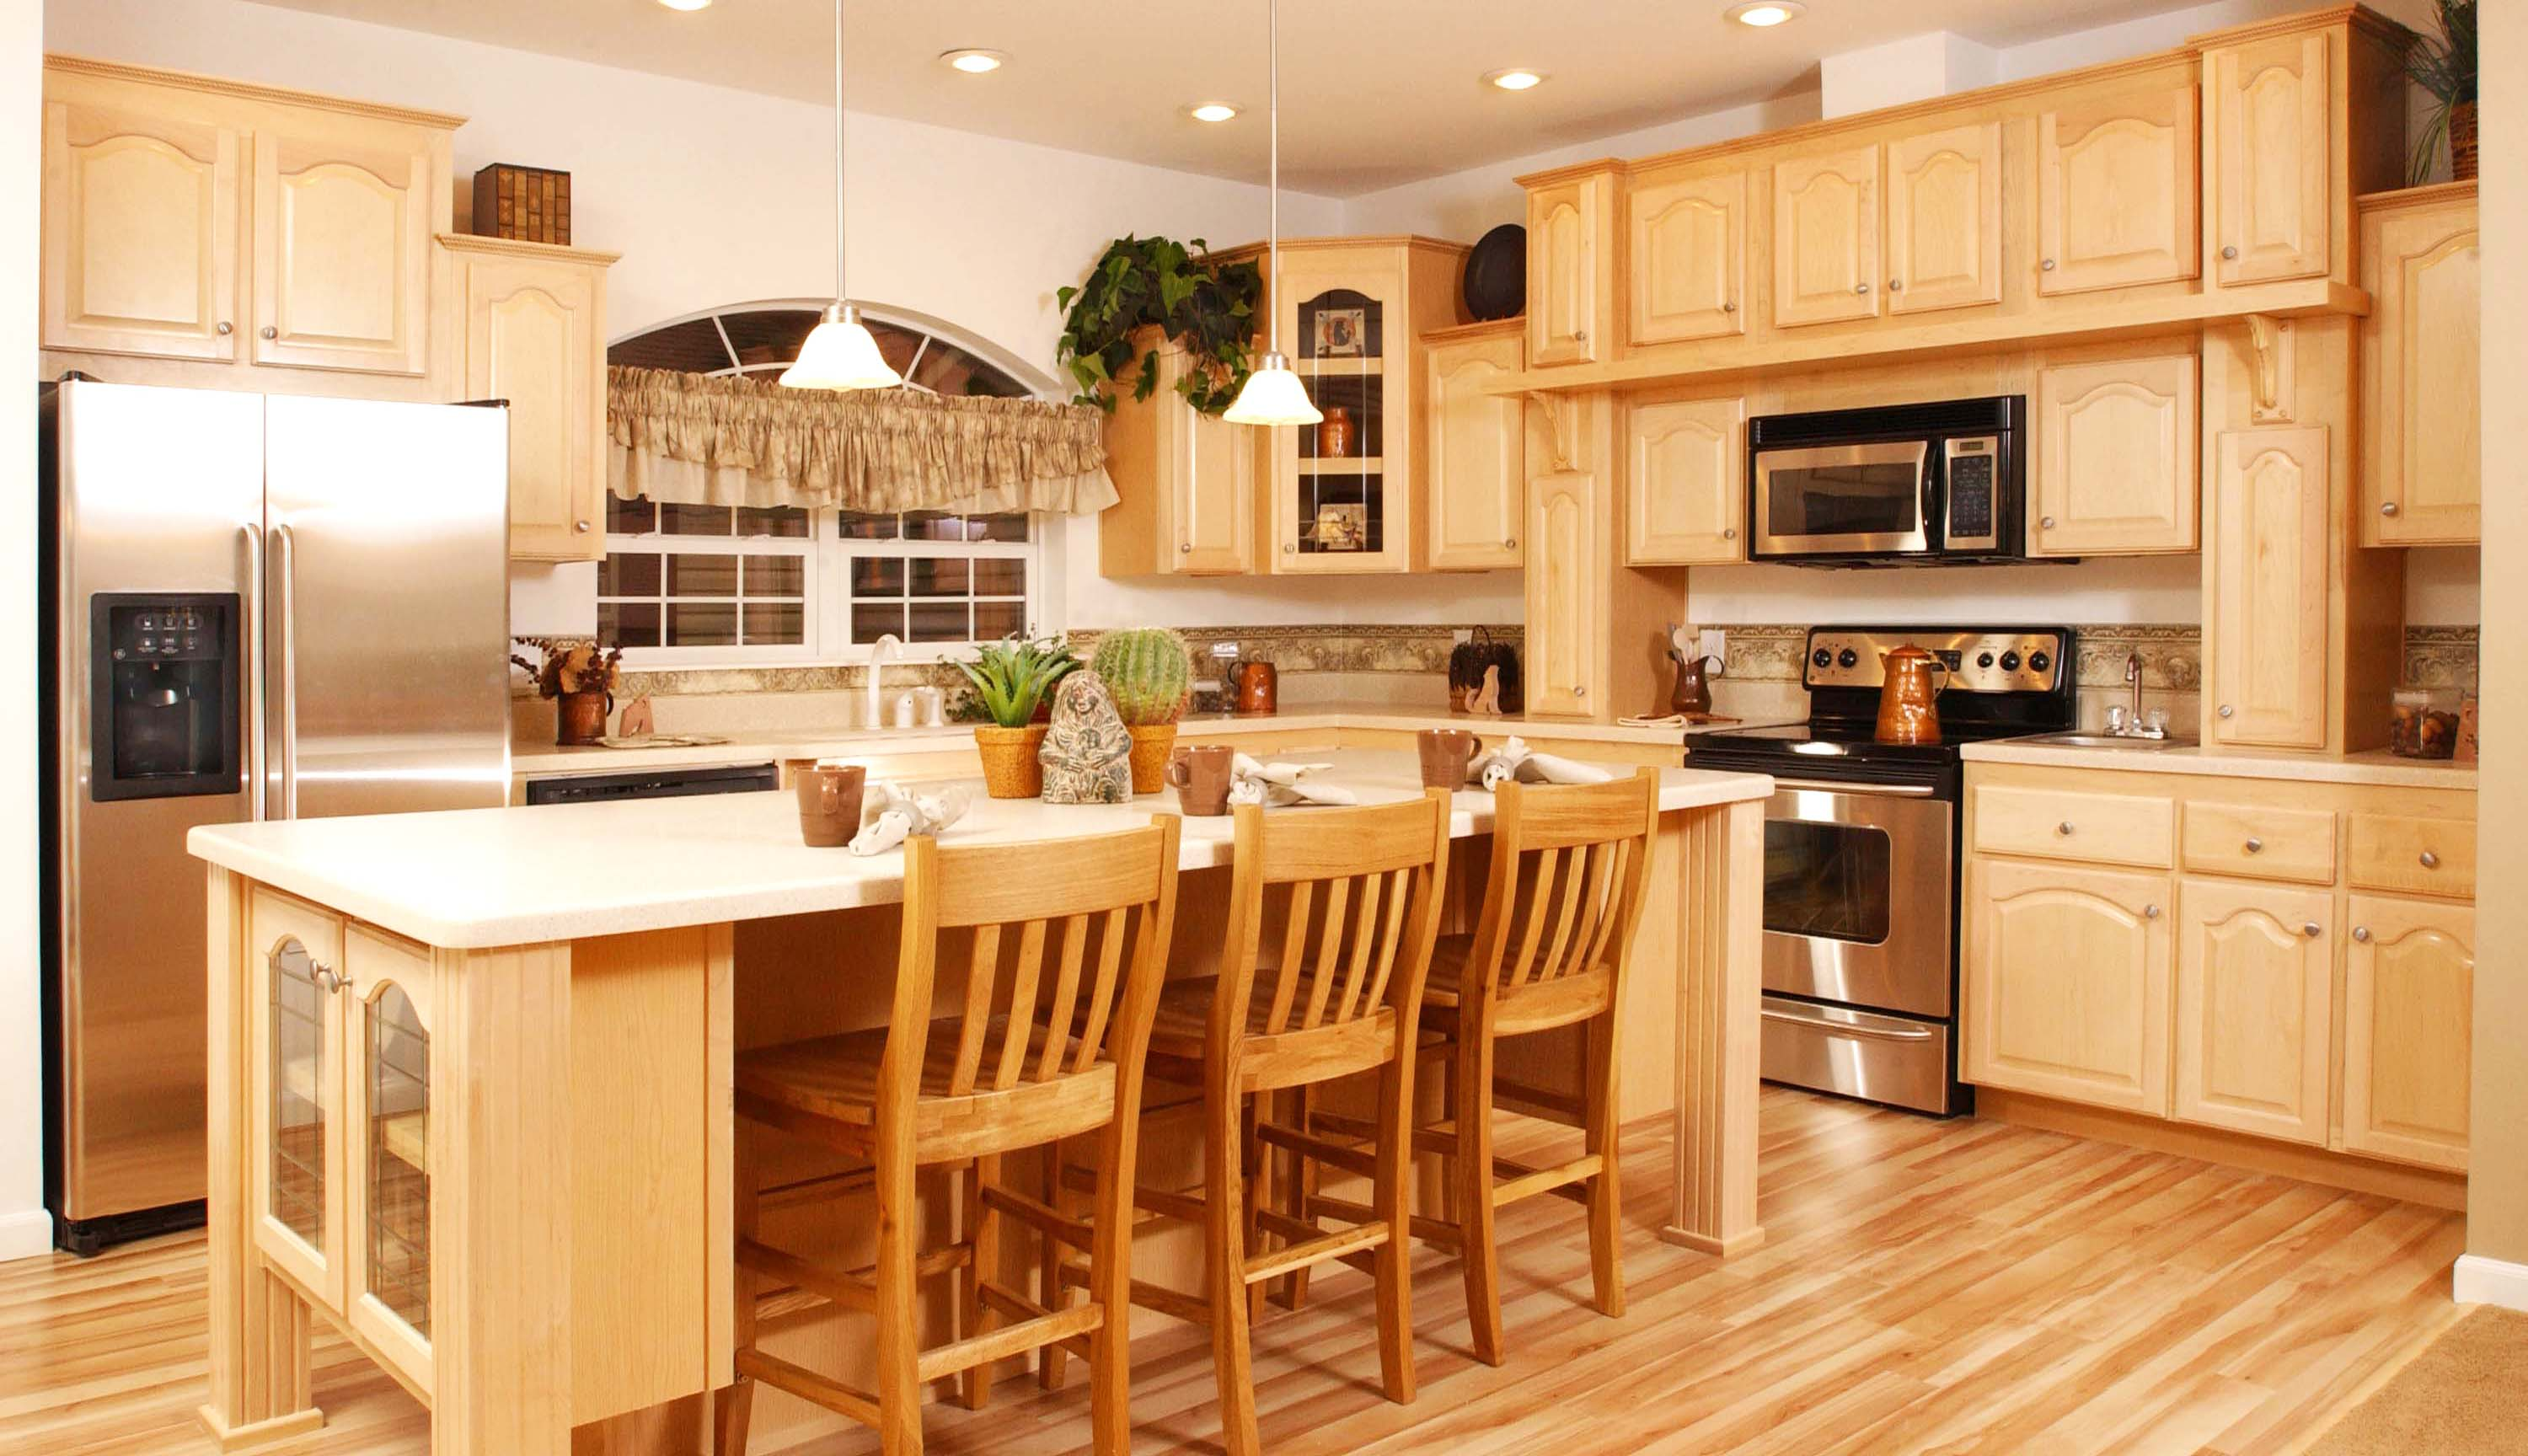 the-best-wooden-furniture-material-furniture-adorable-maple-kitchen-cabinets-for-home-galery-design-ideas-pictures-fabulous-accomplished_country-maple-woods-kitchen-cabinet